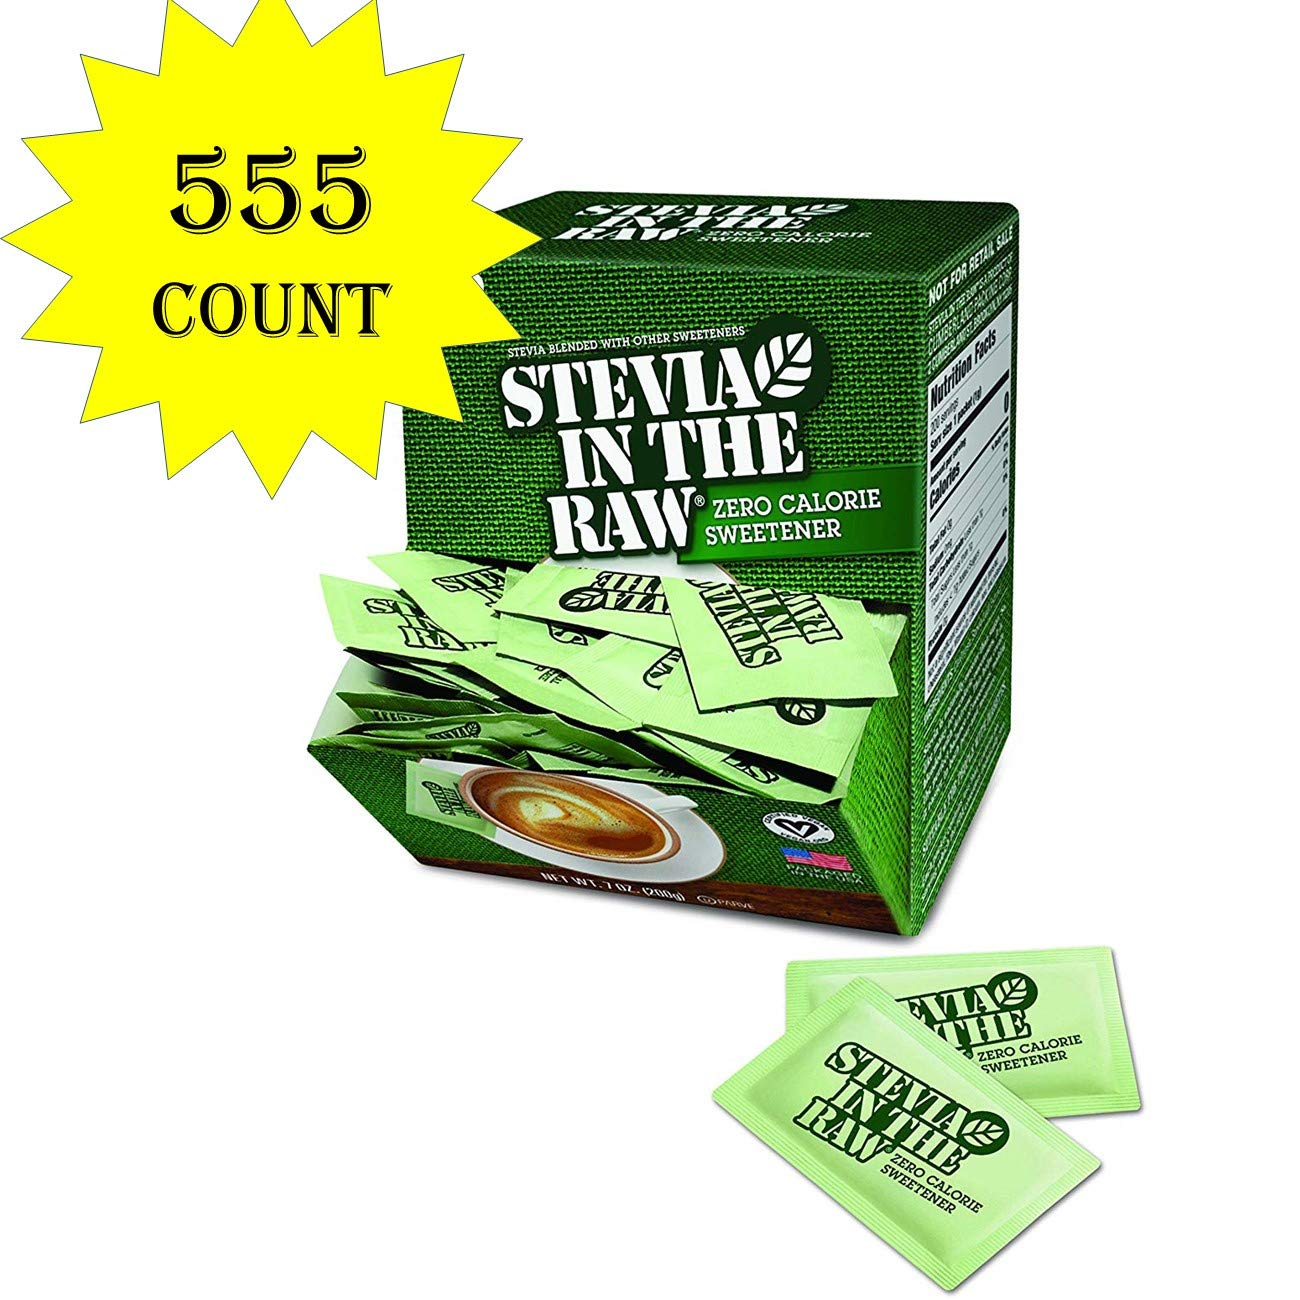 Stevia In The Raw, 555 Count (555 Count total) by In The Raw